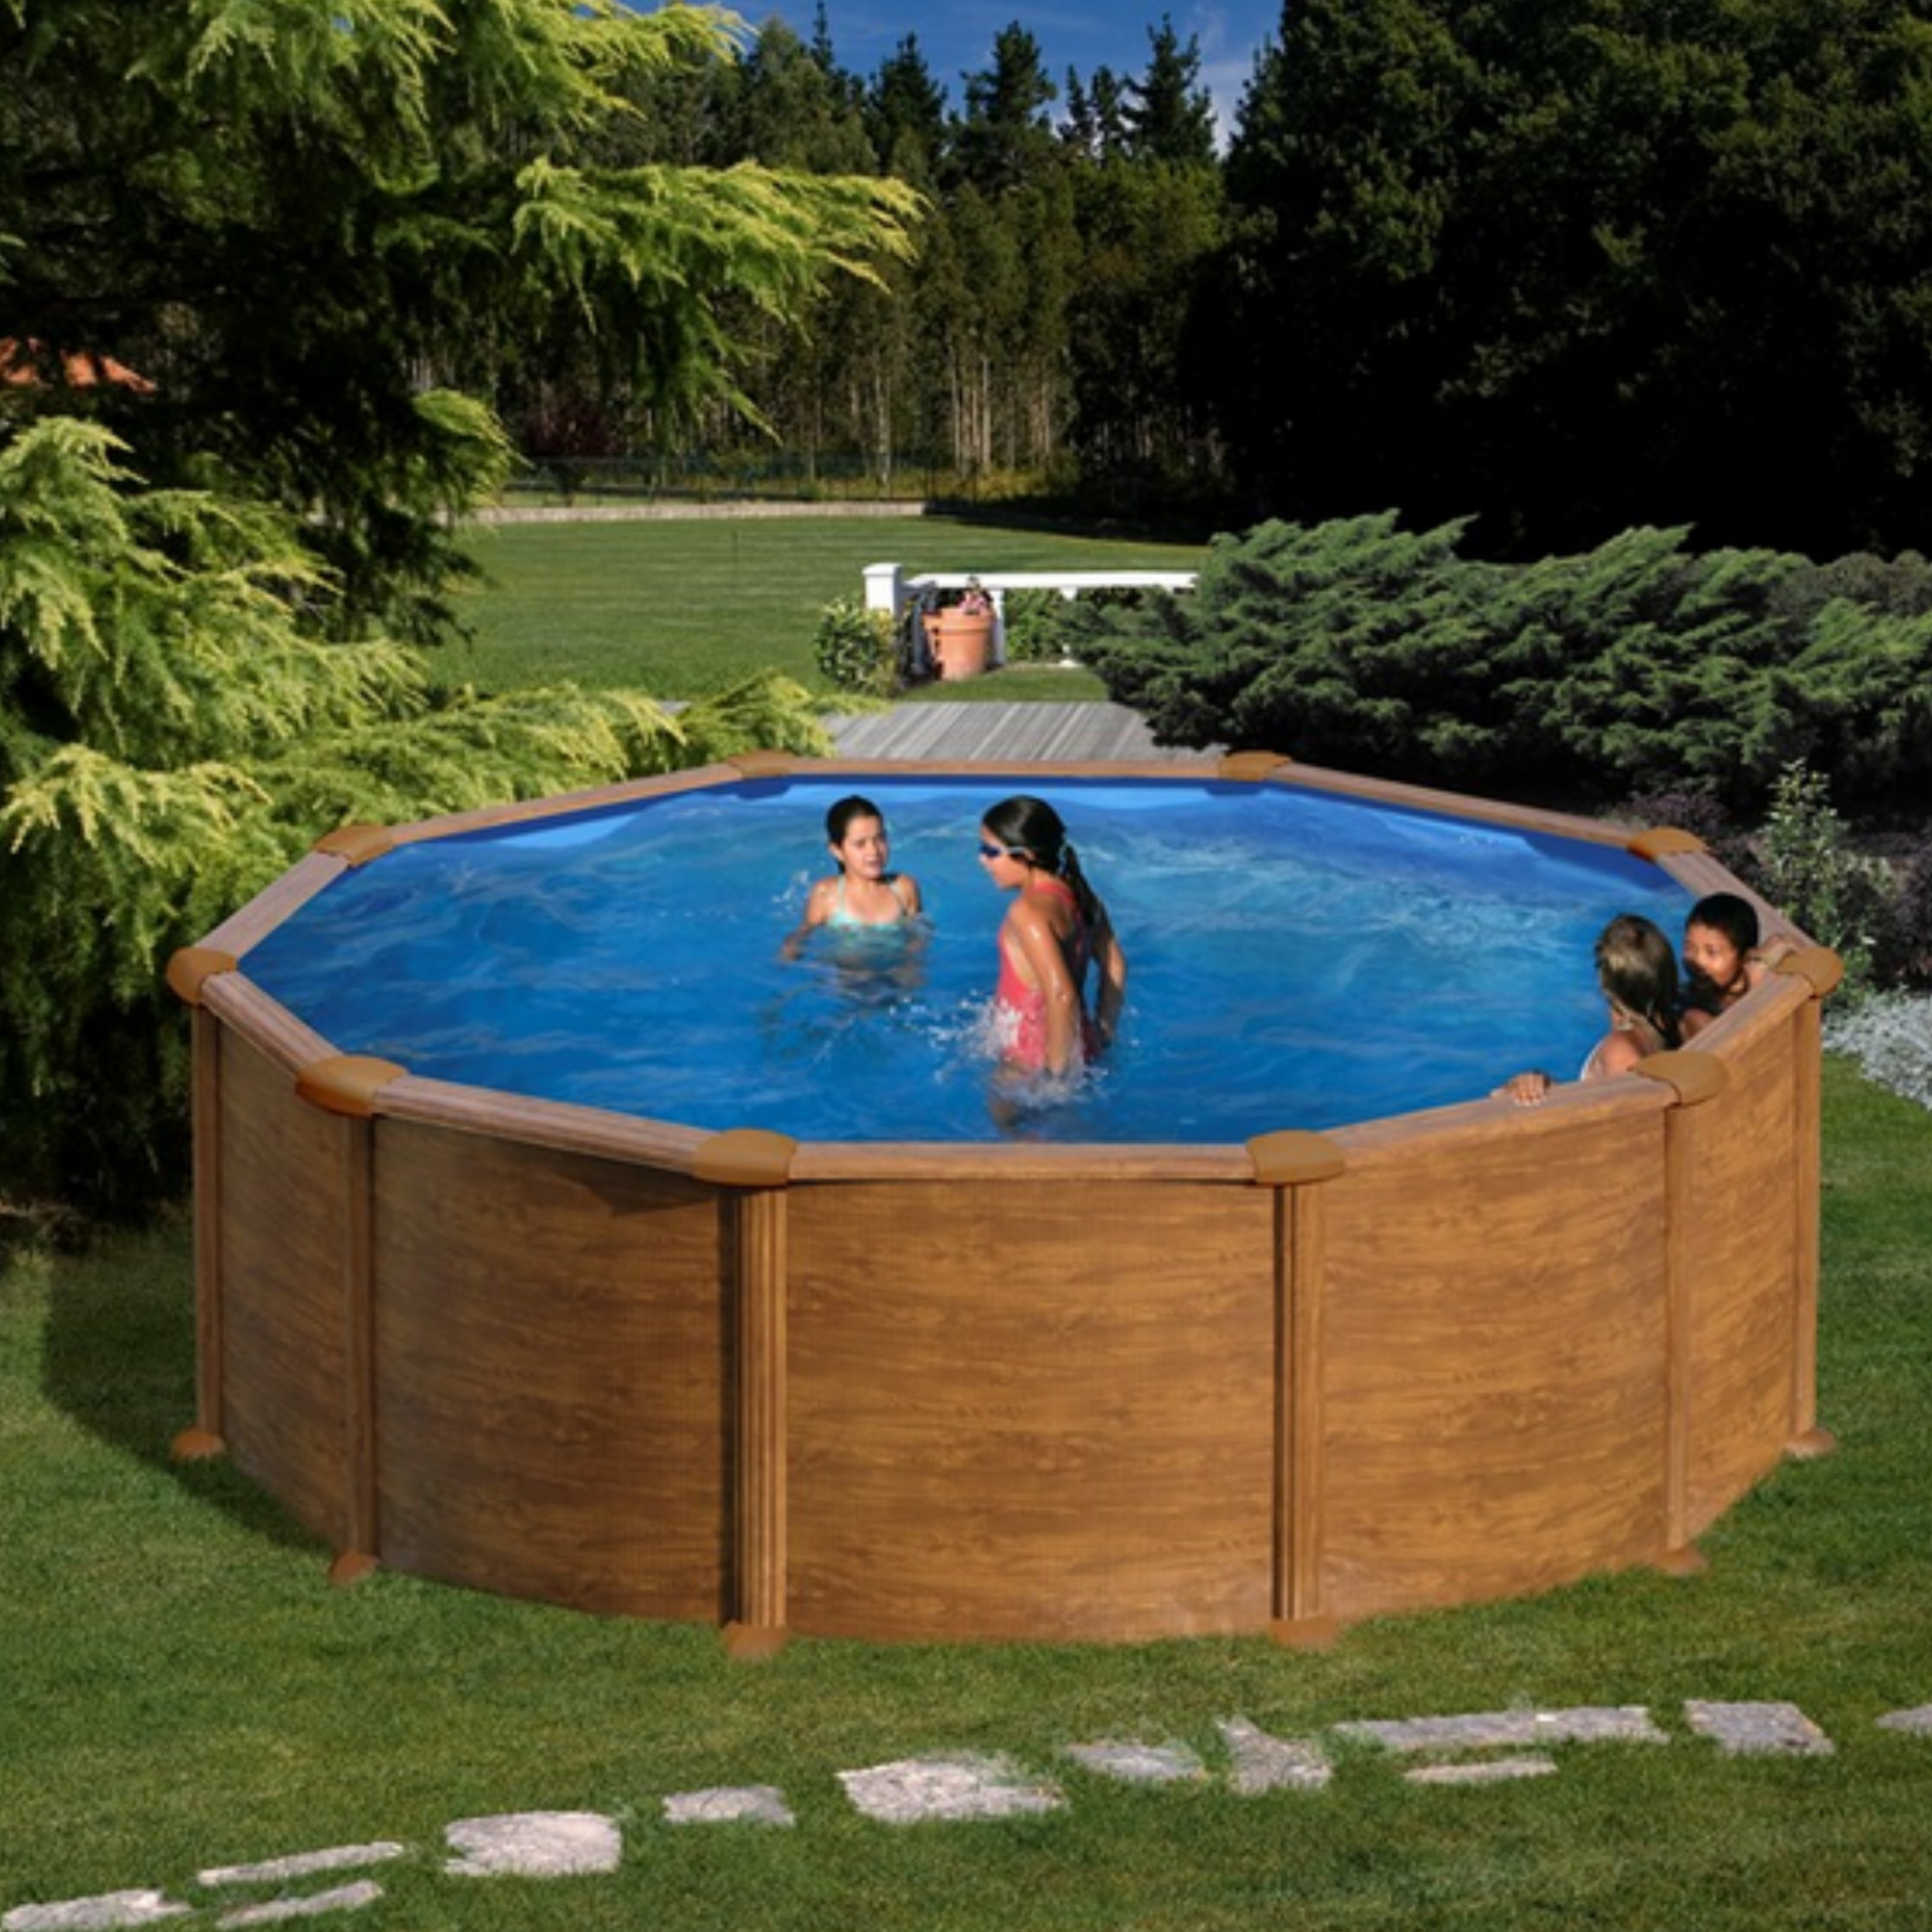 rundformbeckenset holzoptik mauritius 350 cm x 132 cm pool chlor shop. Black Bedroom Furniture Sets. Home Design Ideas